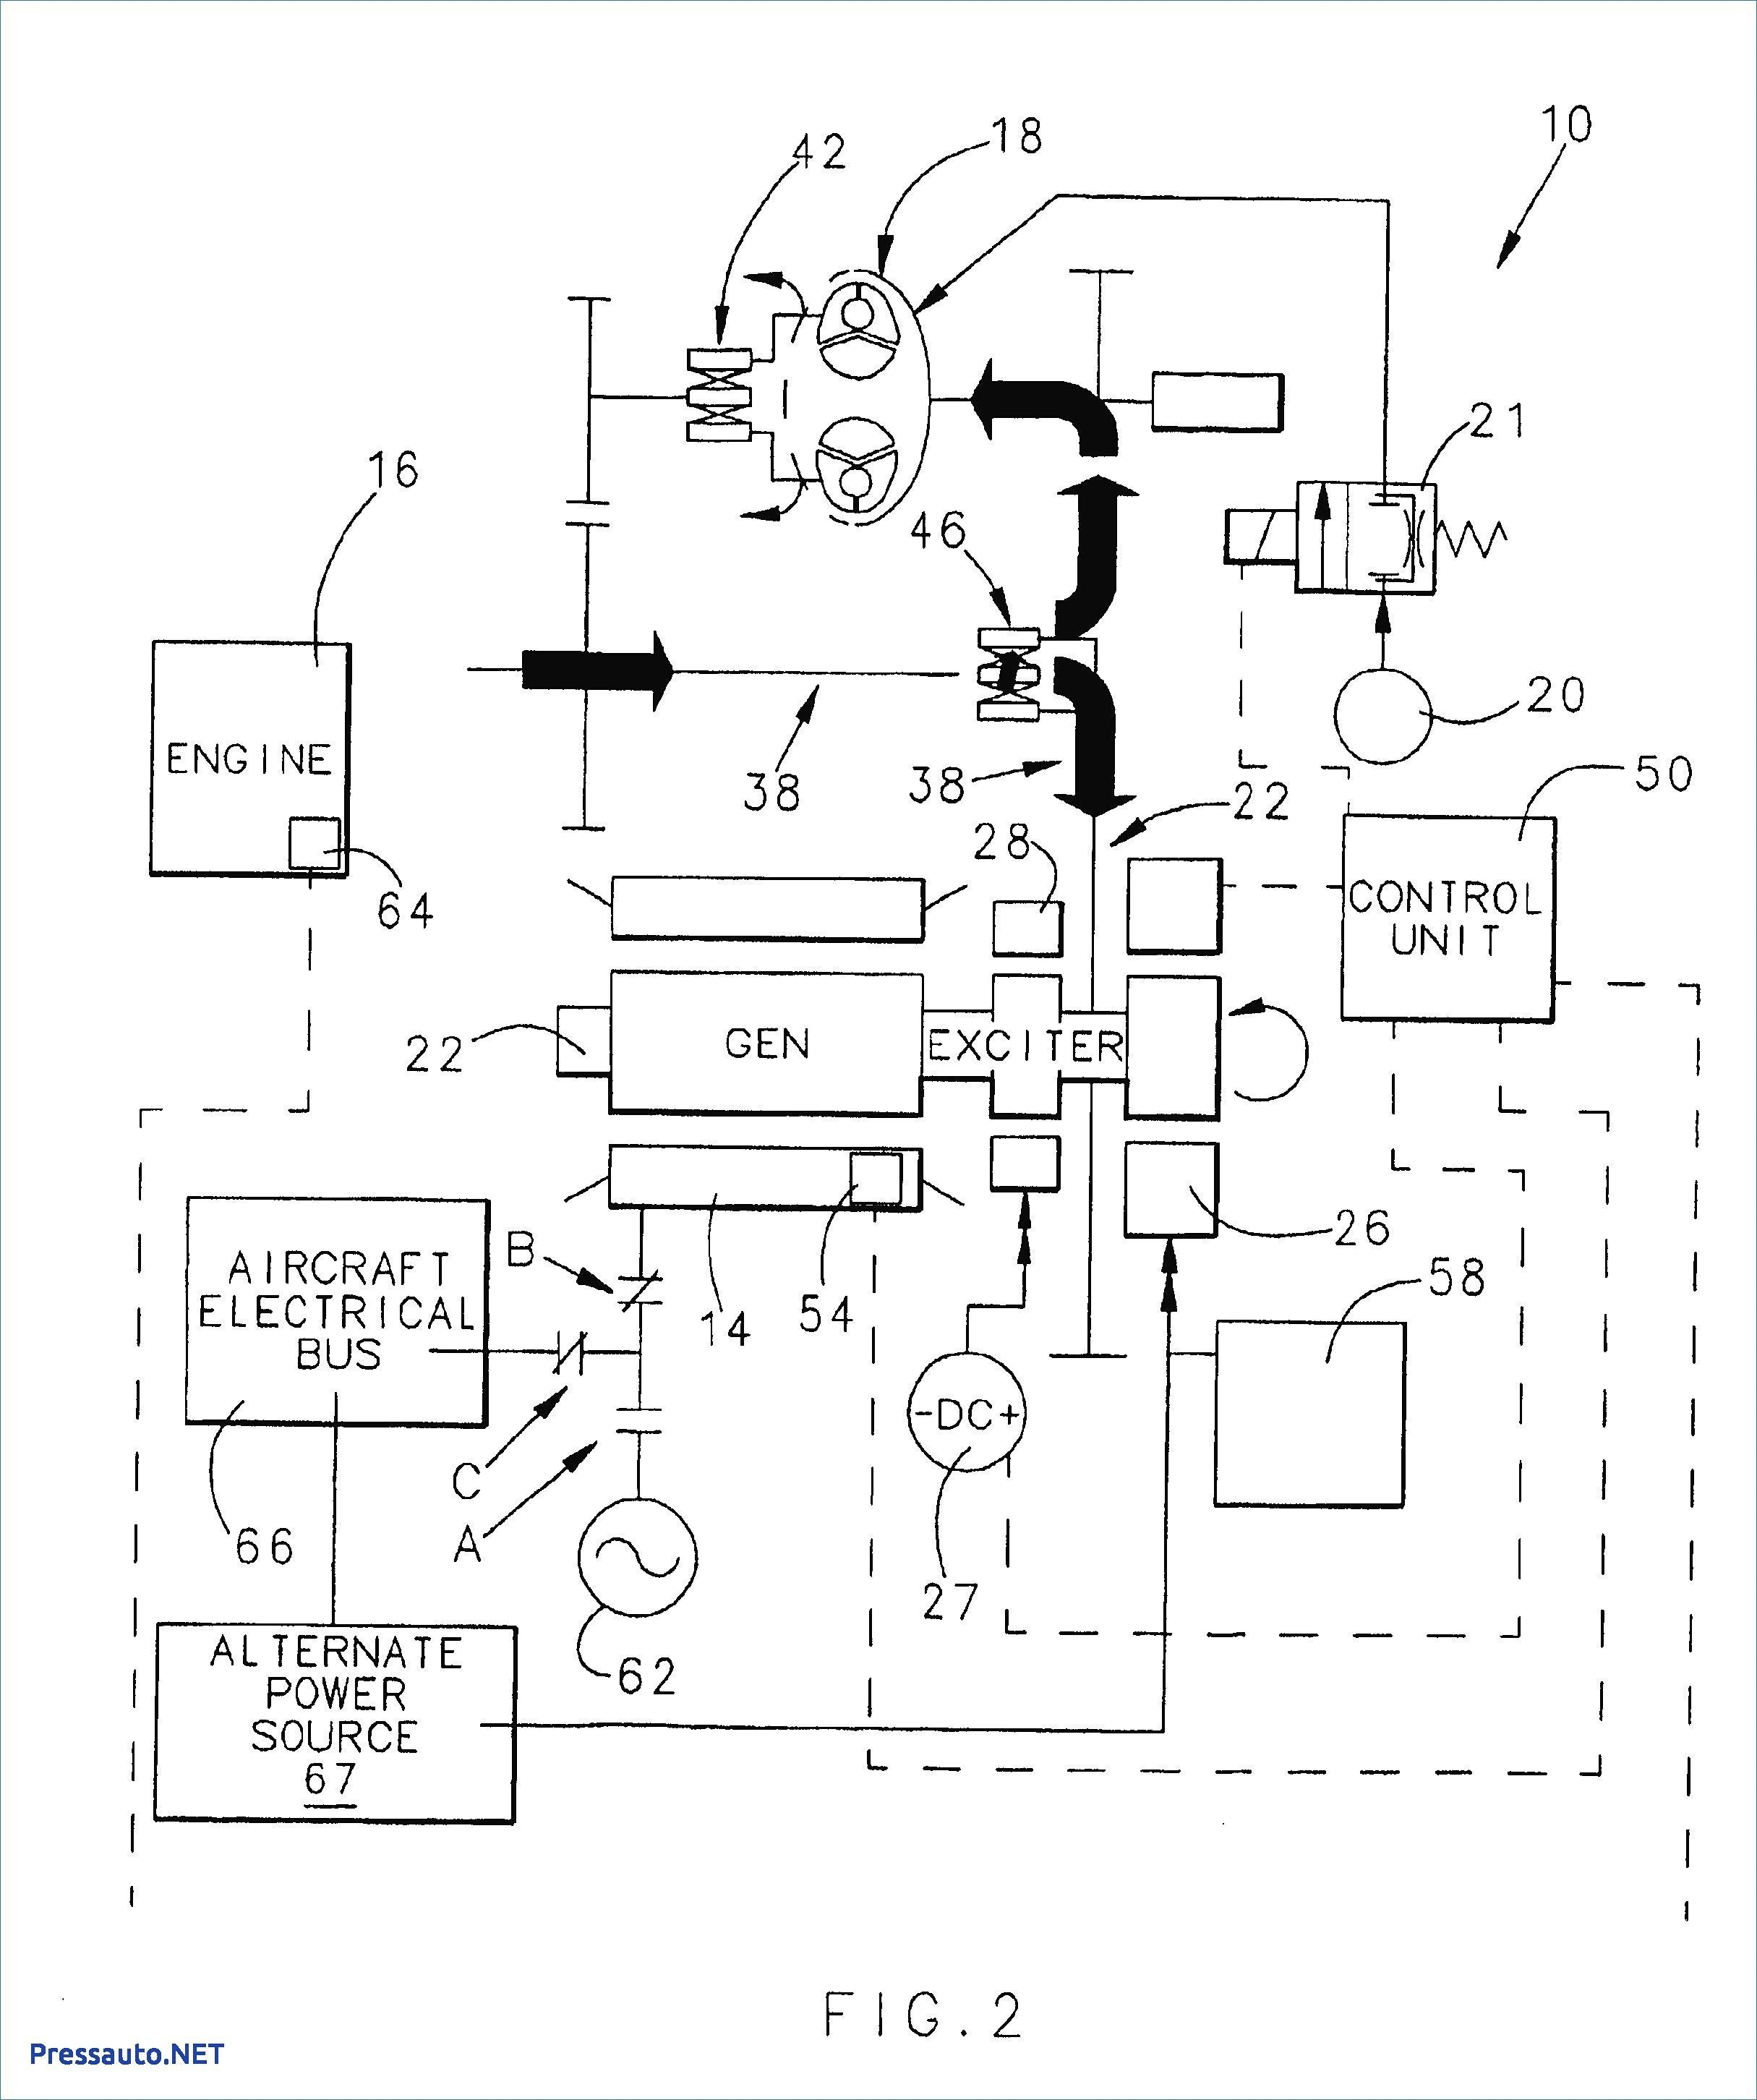 Unique Skytronics Alternator Wiring Diagram Diagrams